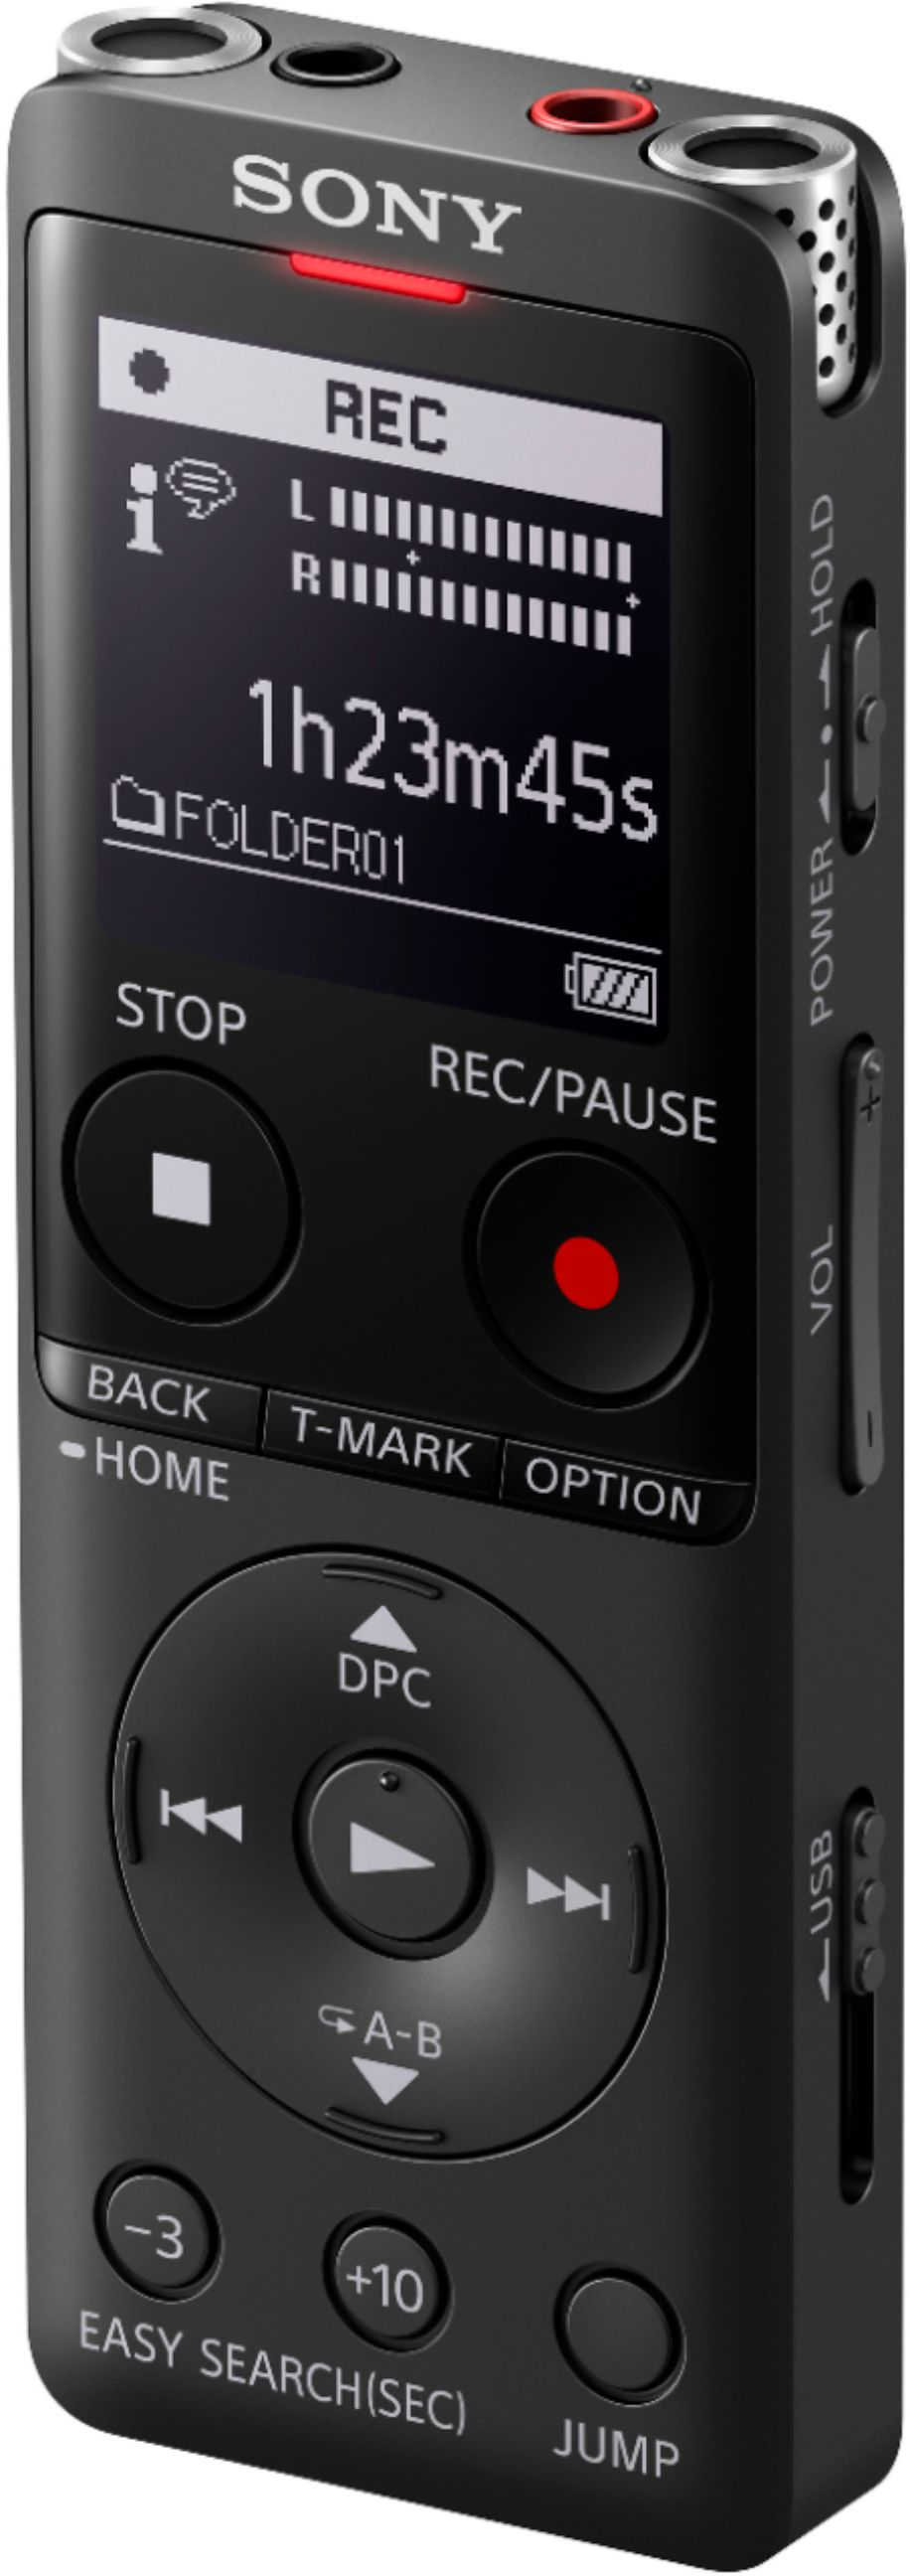 Sony UX Series Digital Voice Recorder Black ICDUX570BLK